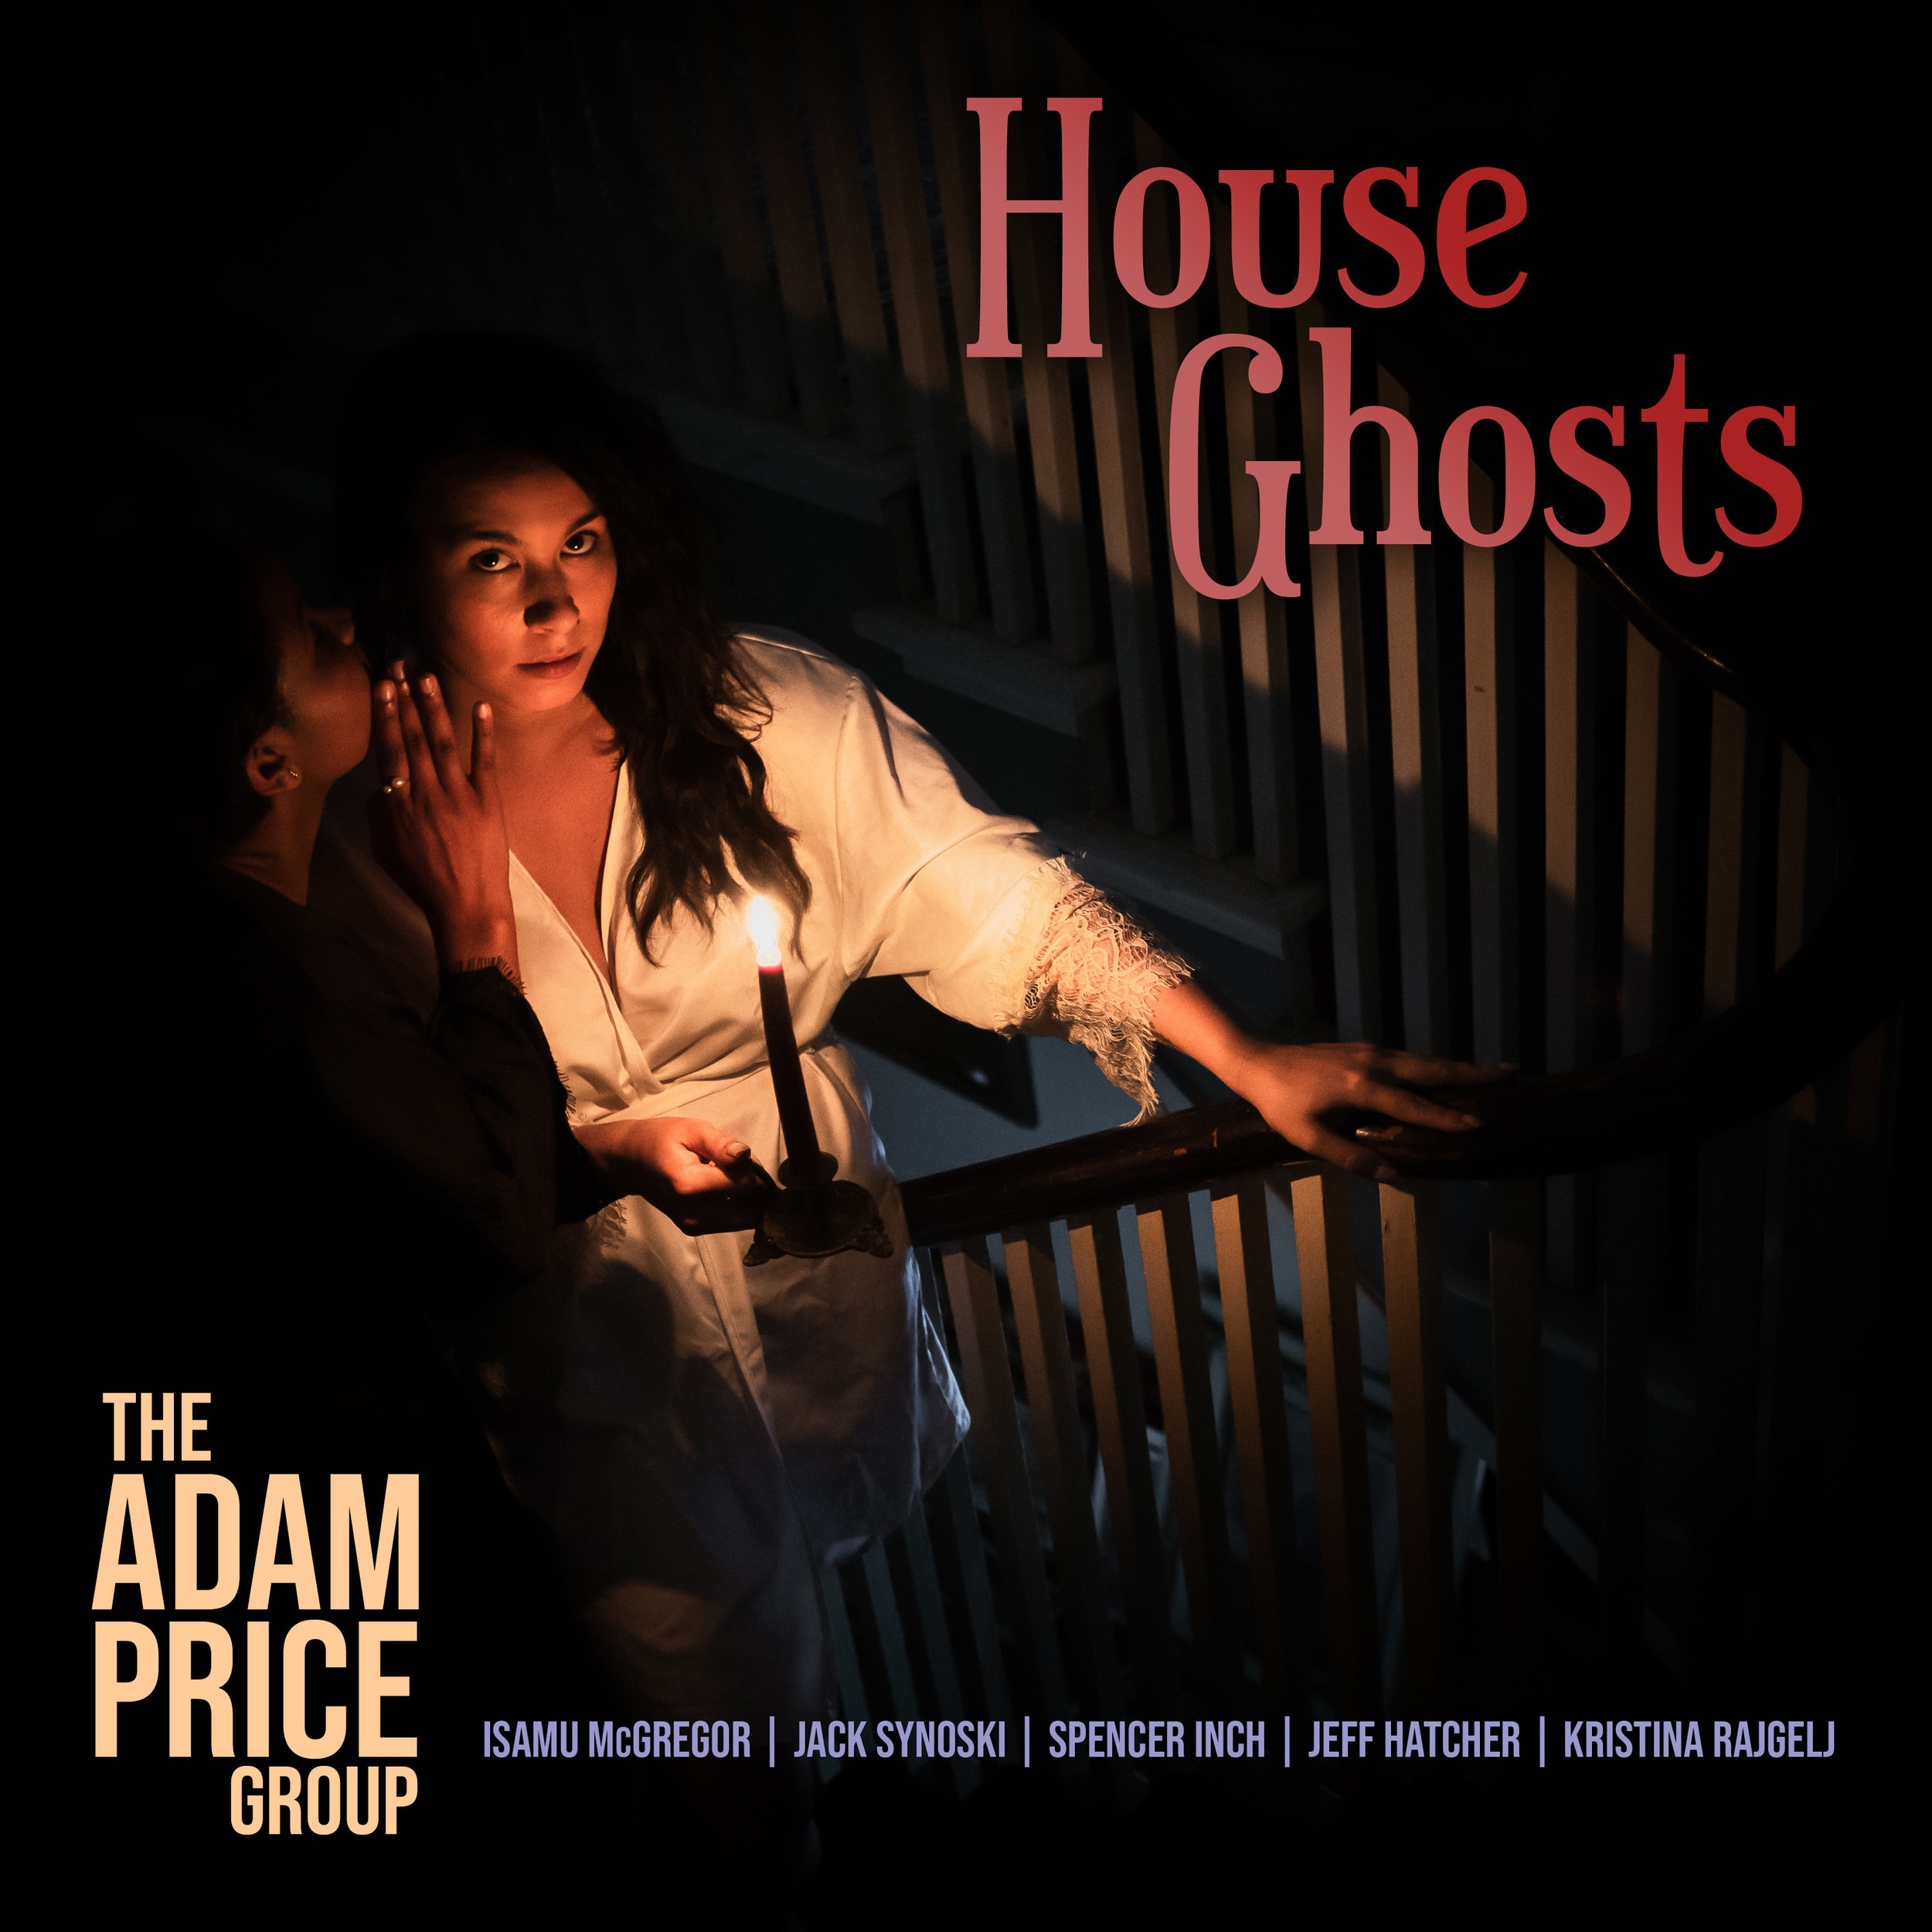 The Adam Price Group - House Ghosts